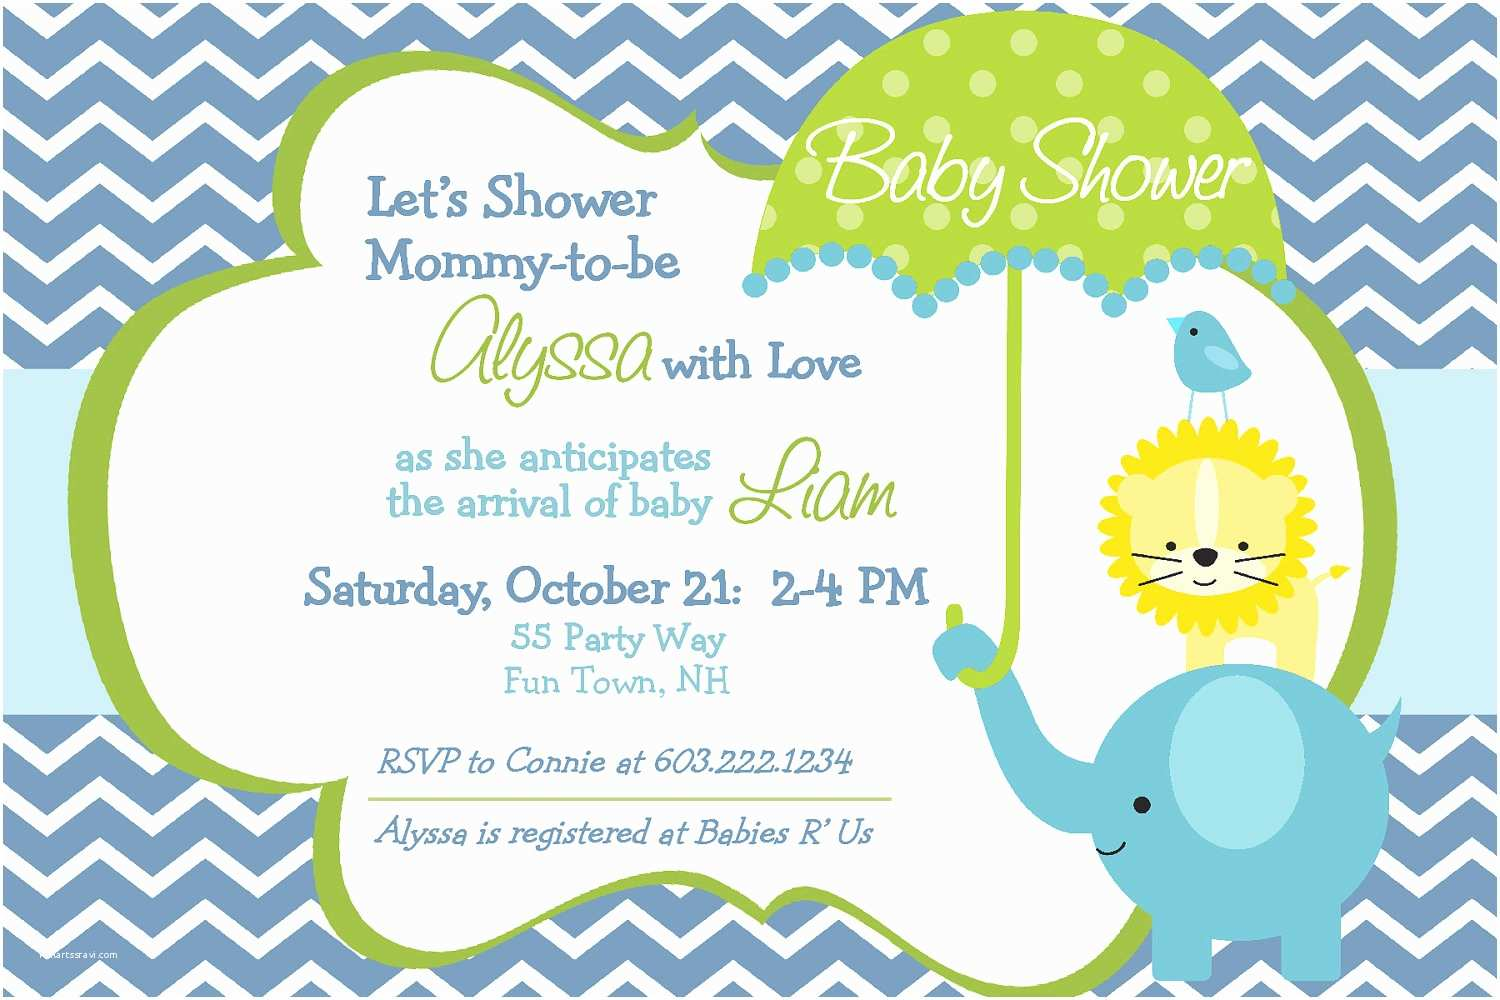 Baby Shower Invitation Message Baby Shower Invitations for Boy & Girls Baby Shower